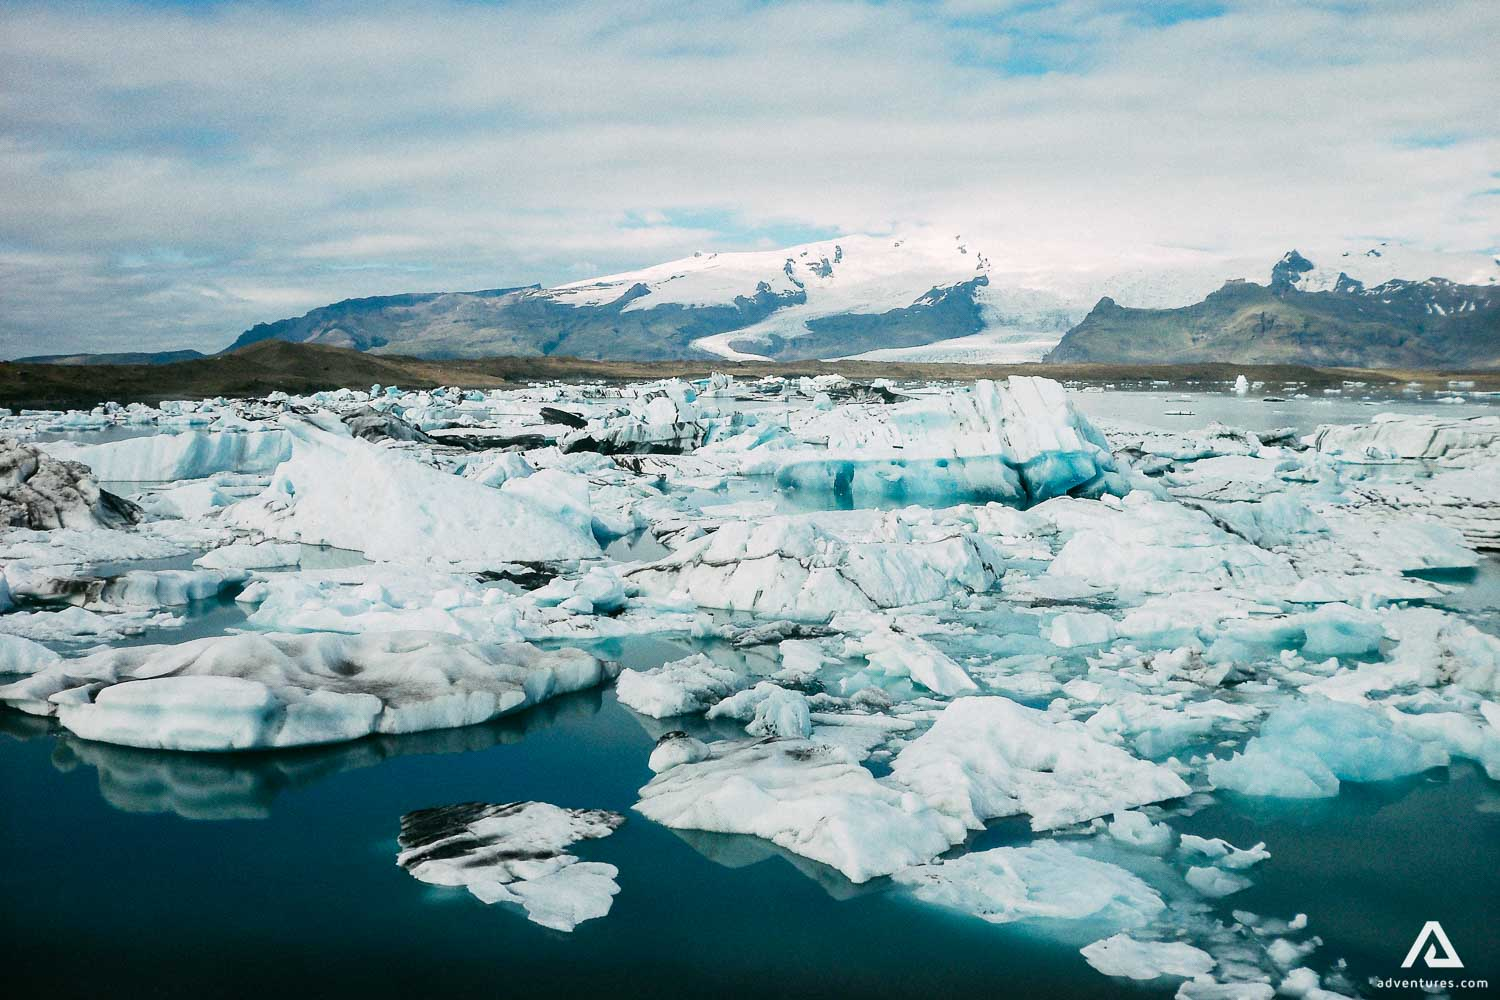 Jokulsarlon Glacier Lagoon with many small icebergs